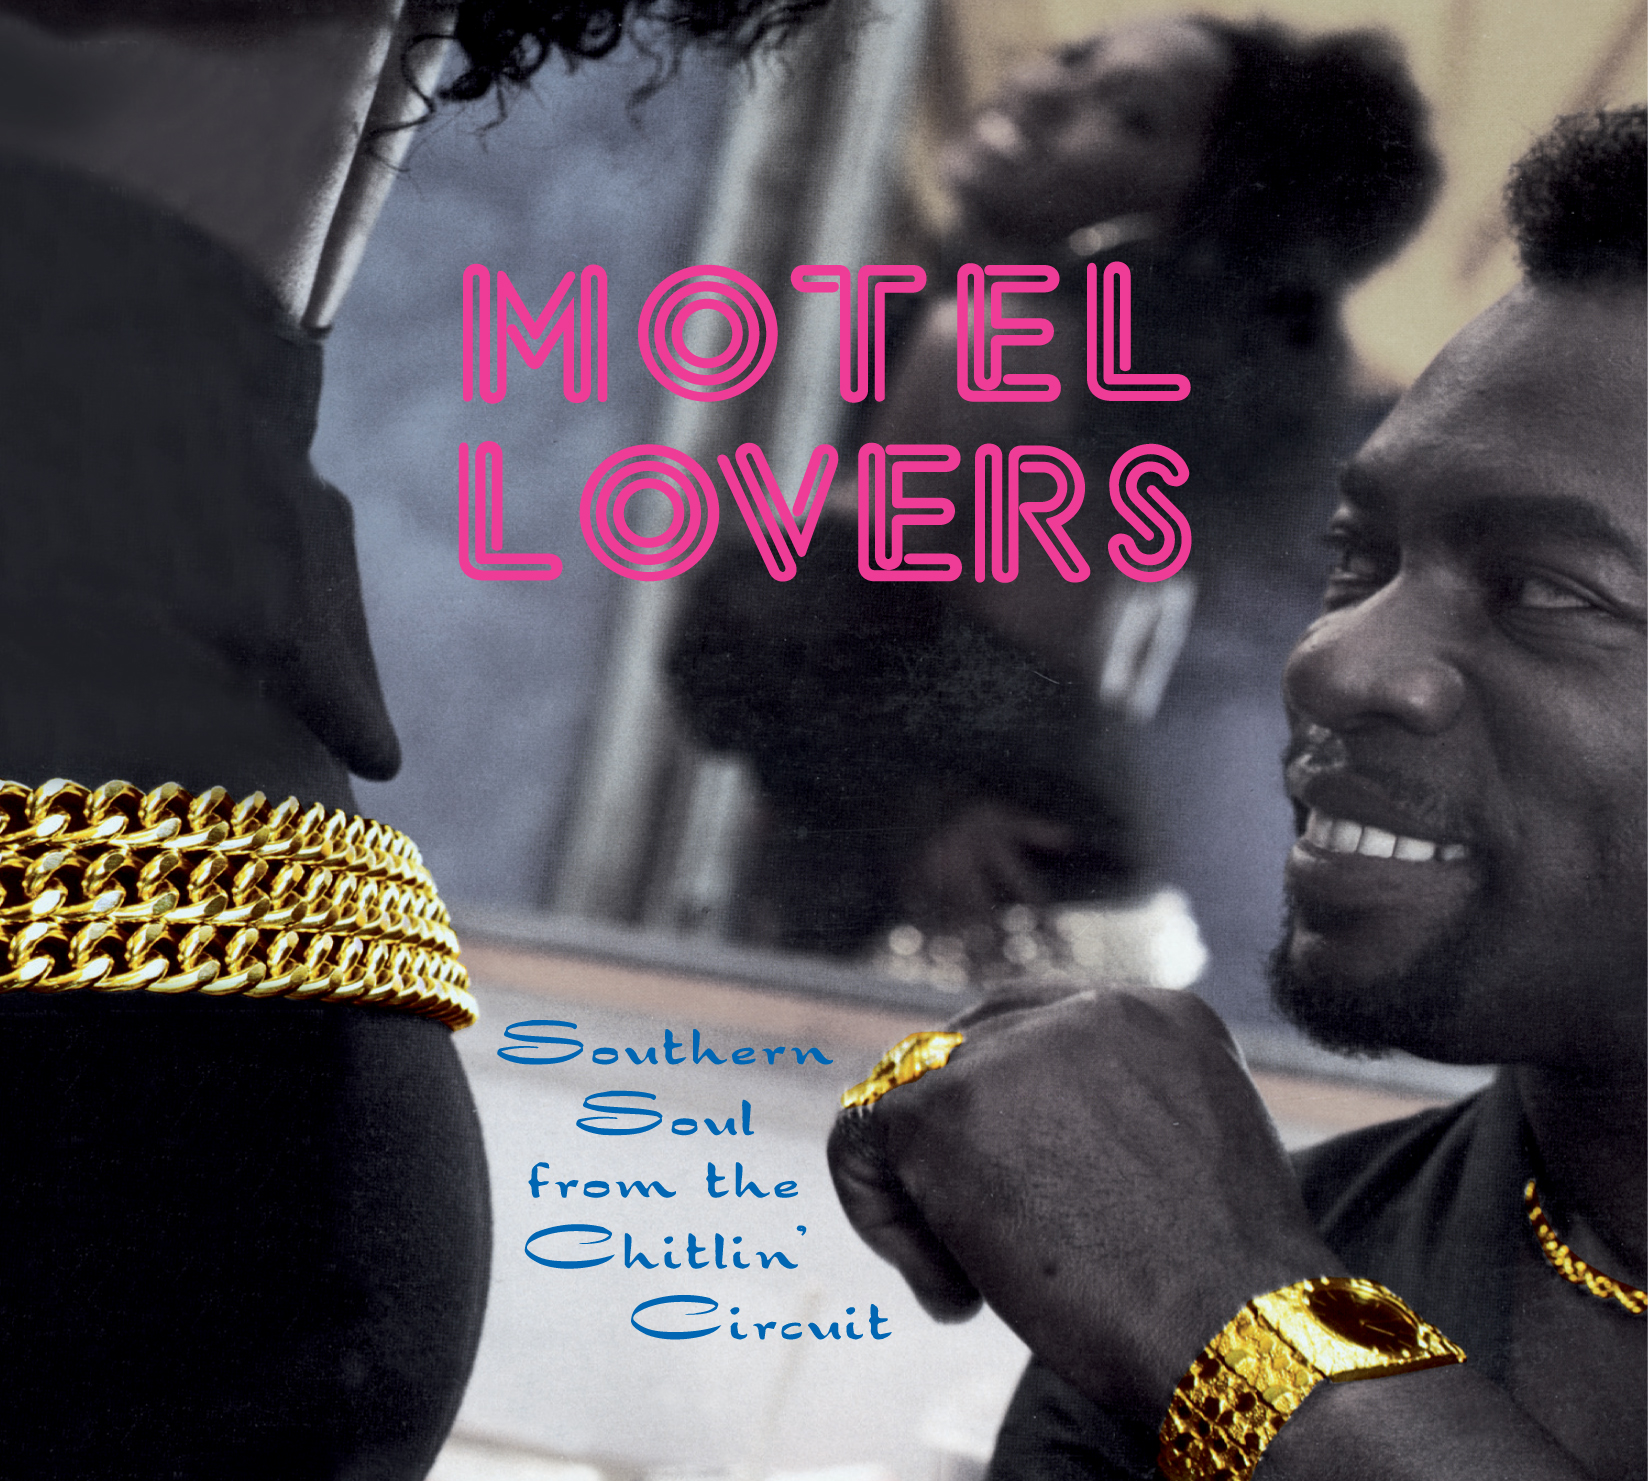 Motel Lovers - Southern Soul from the Chitlin' Circuit 3